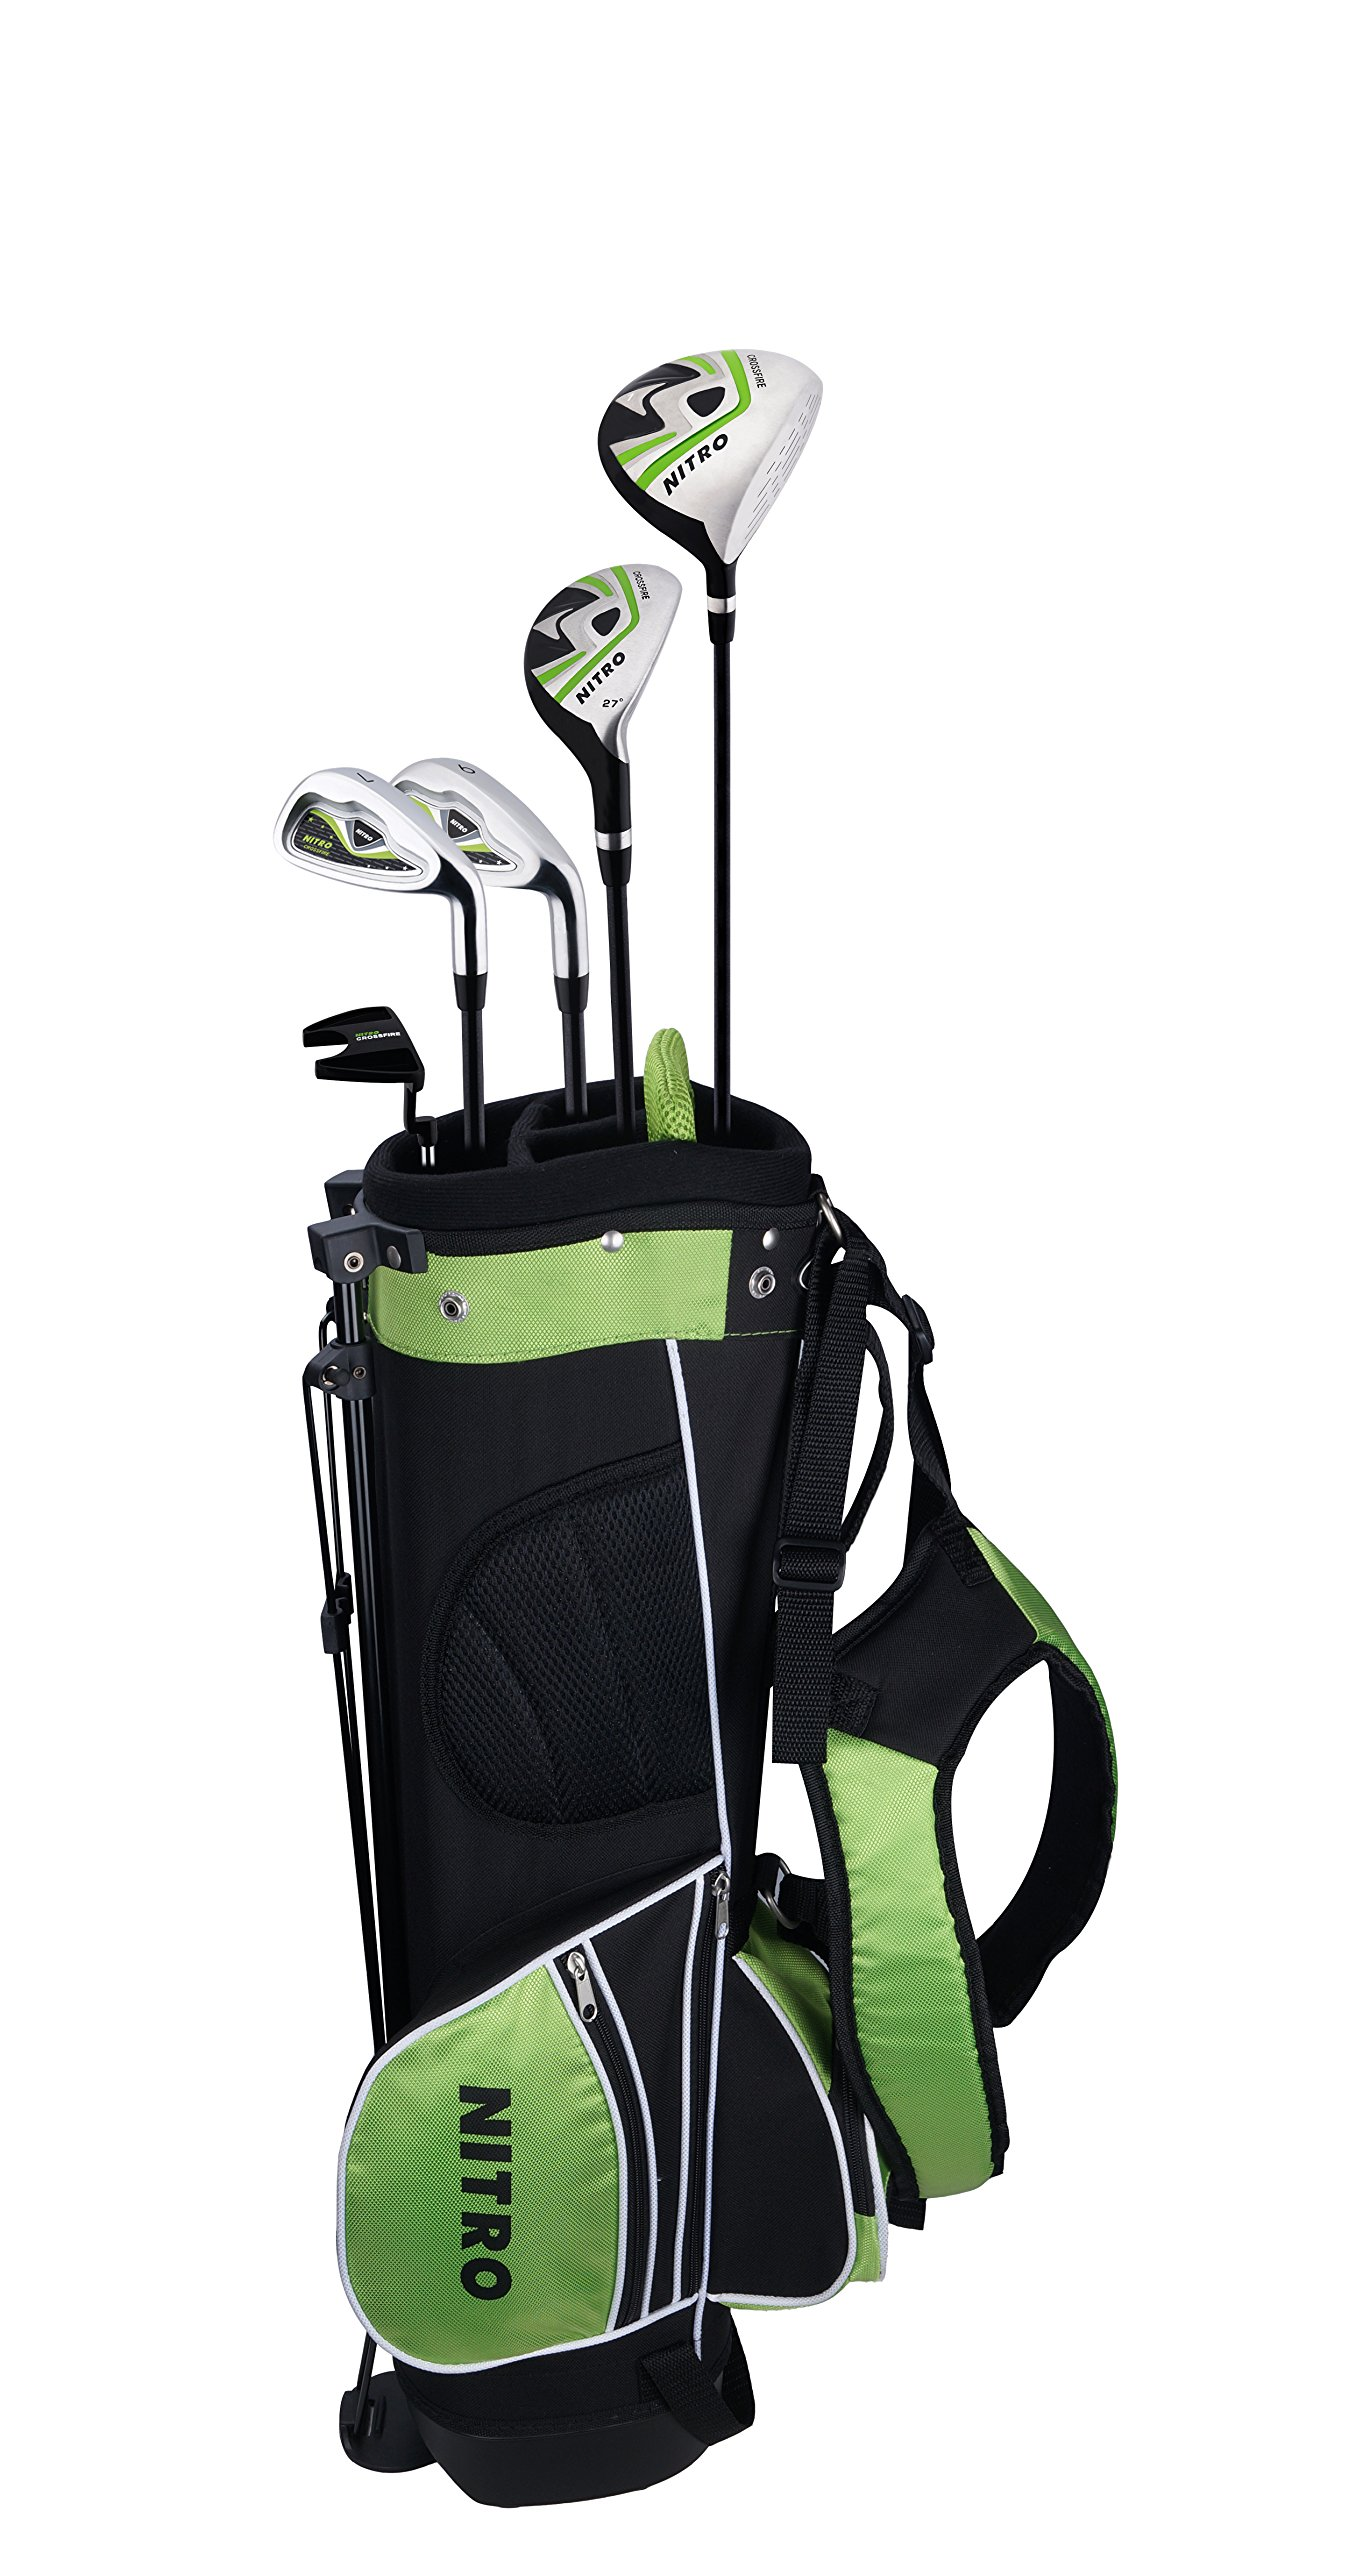 Nitro Crossfire Junior 8 Piece Golf Set, Right Hand, Ages 9-12